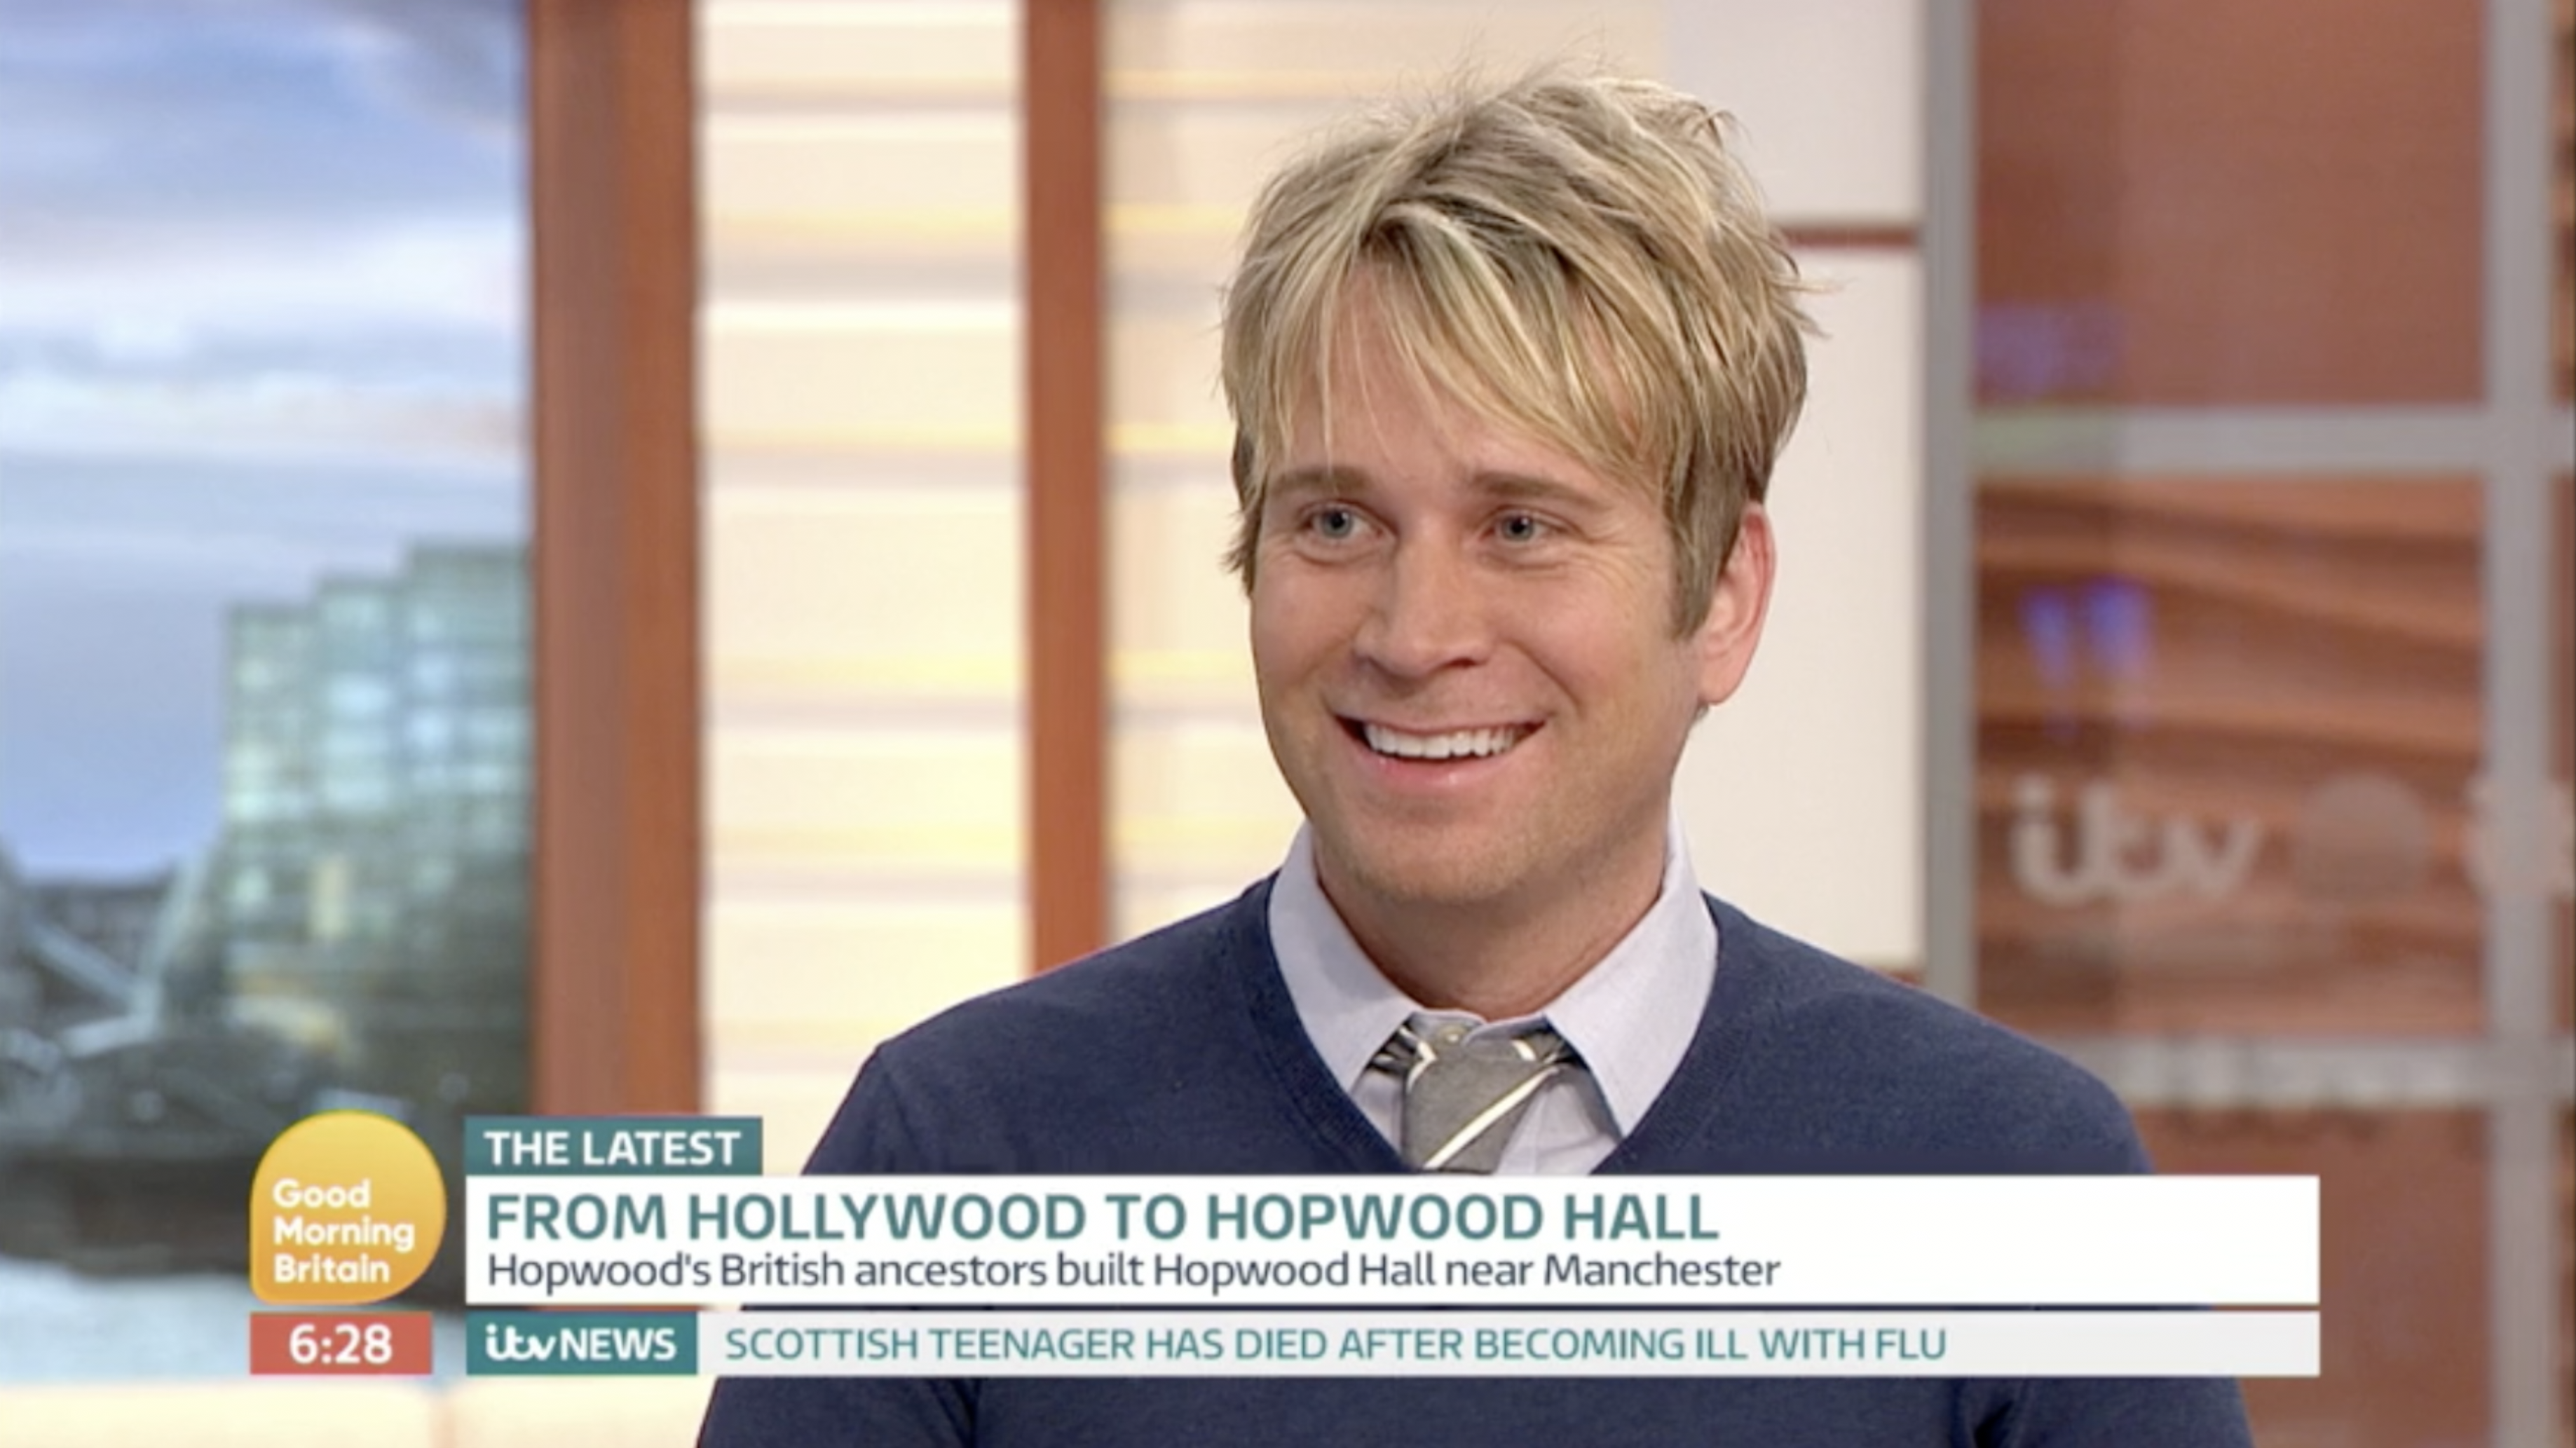 GOOD MORNING BRITAIN with guest Hopwood DePree: By Factory, Digital Agency In Manchester